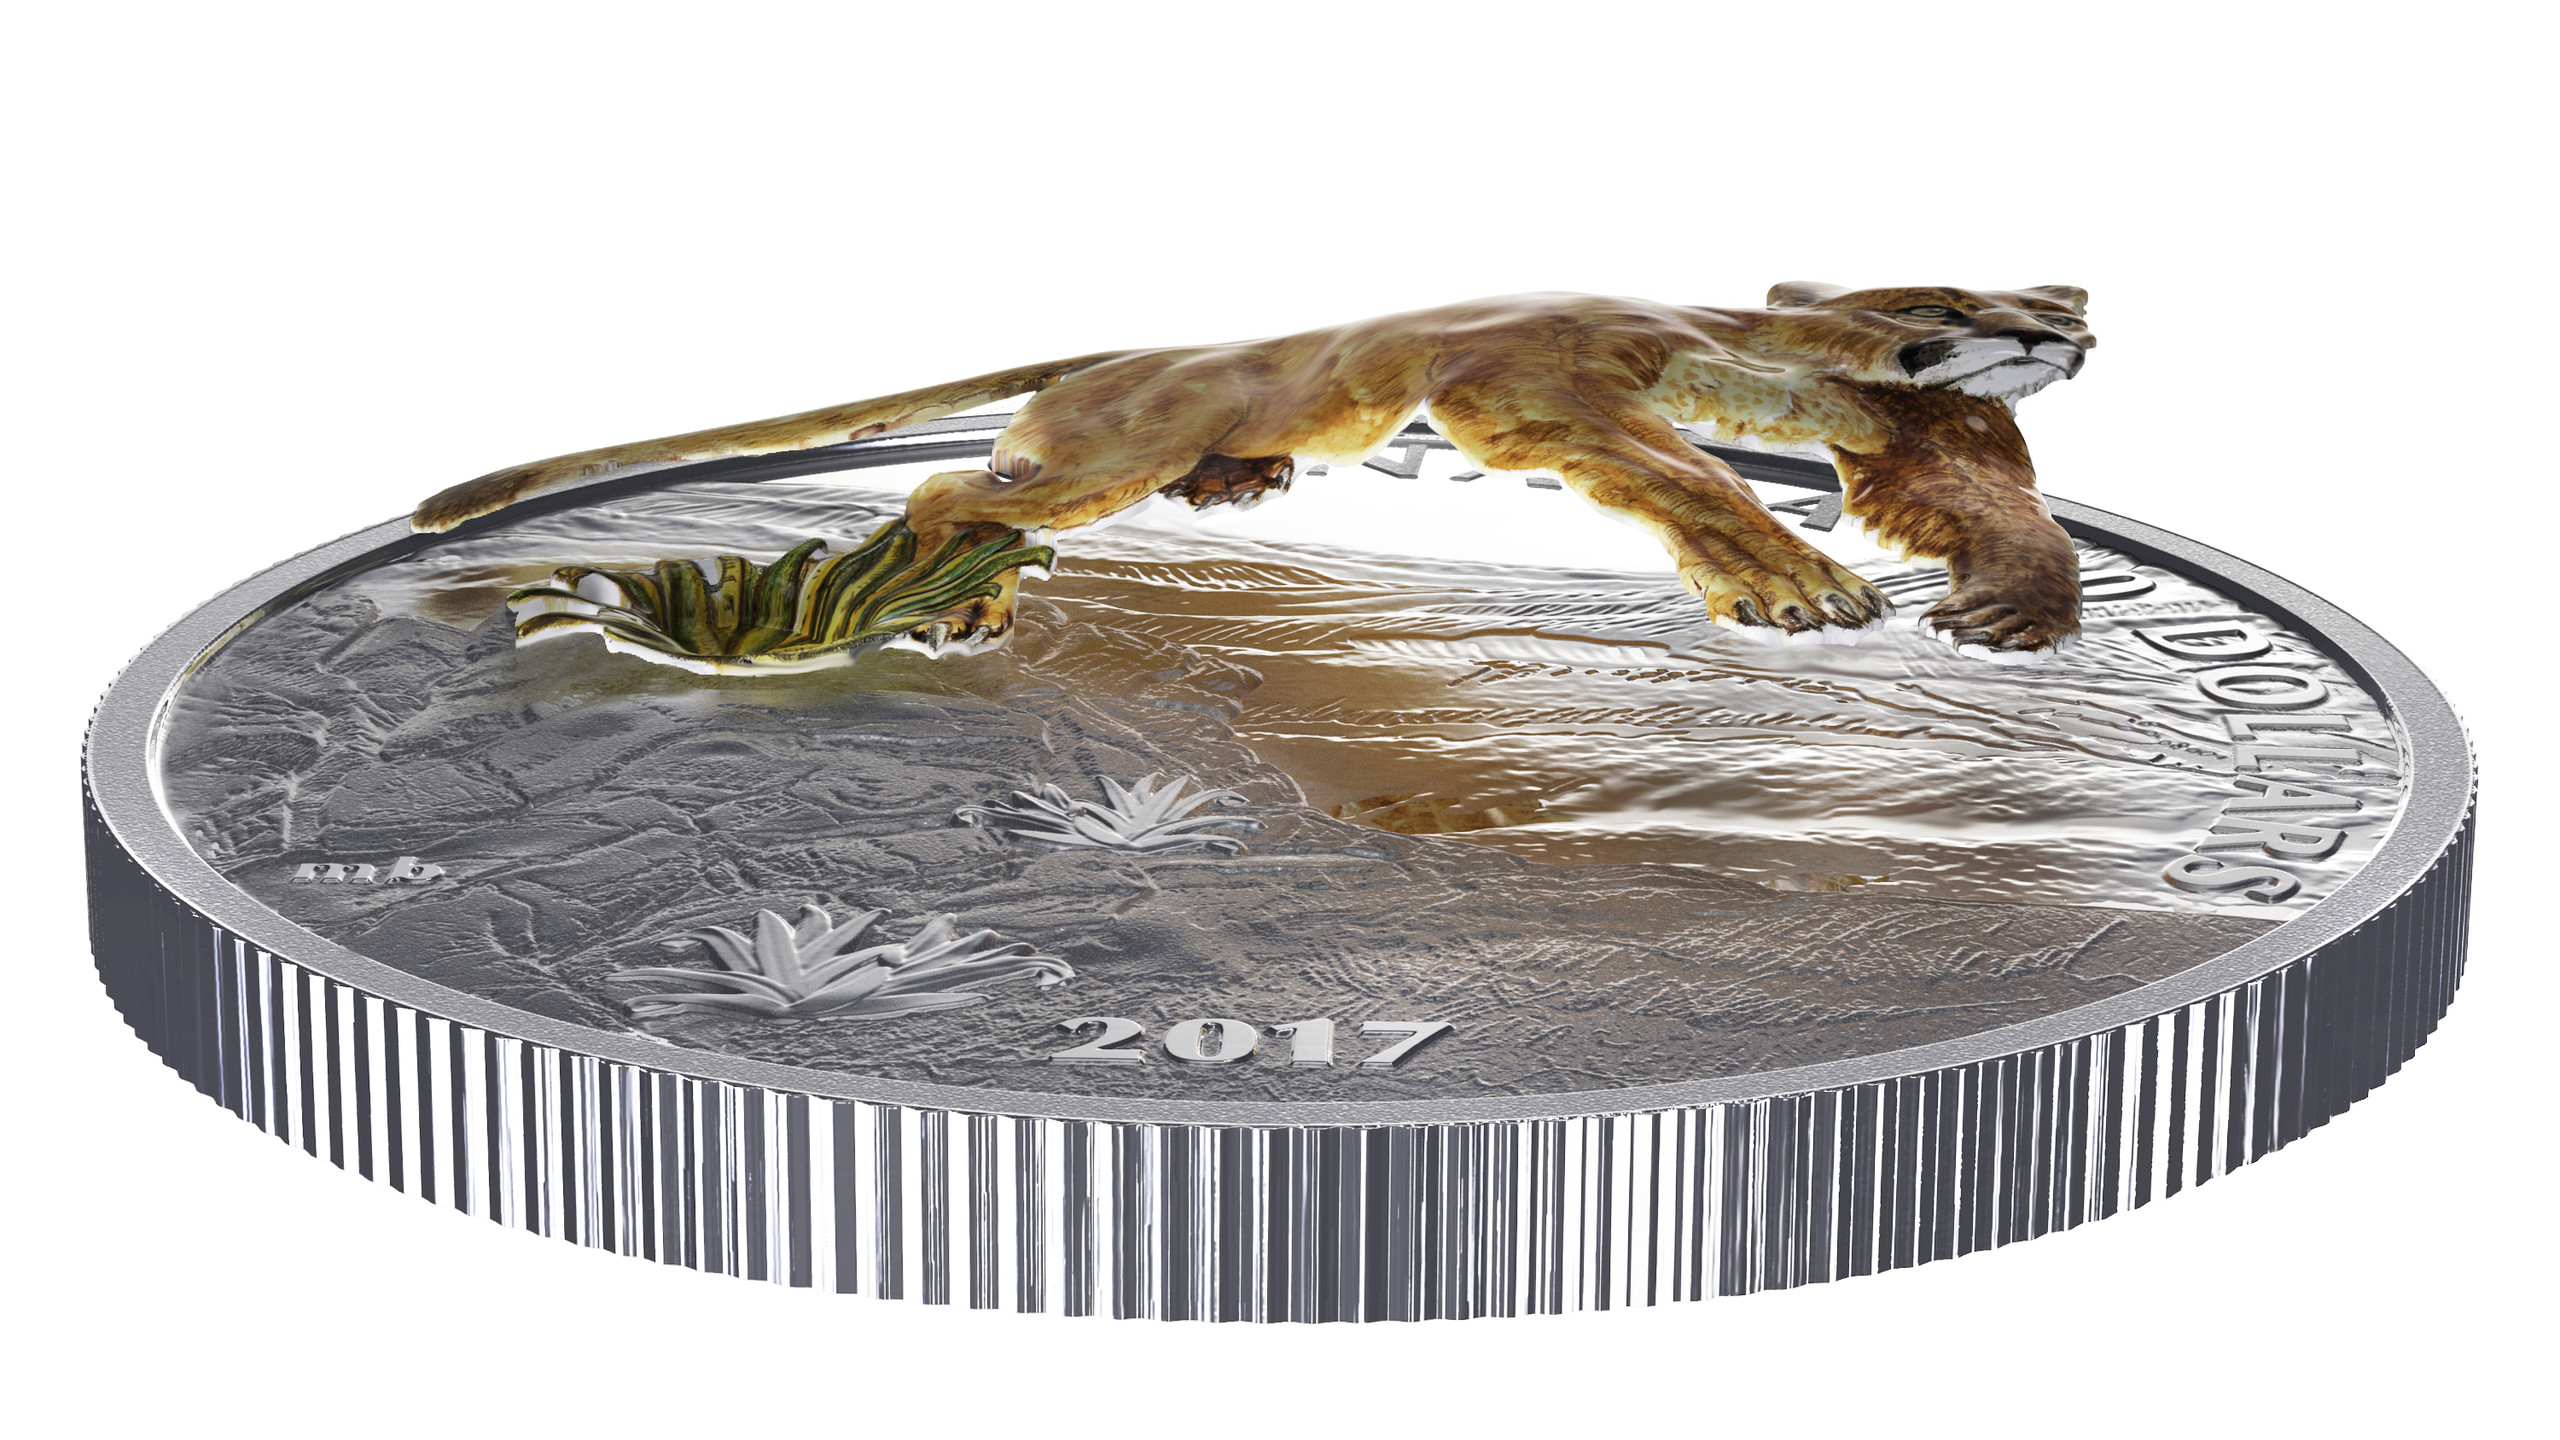 2017 $20 Fine Silver Coin- Leaping Cougar Flat View